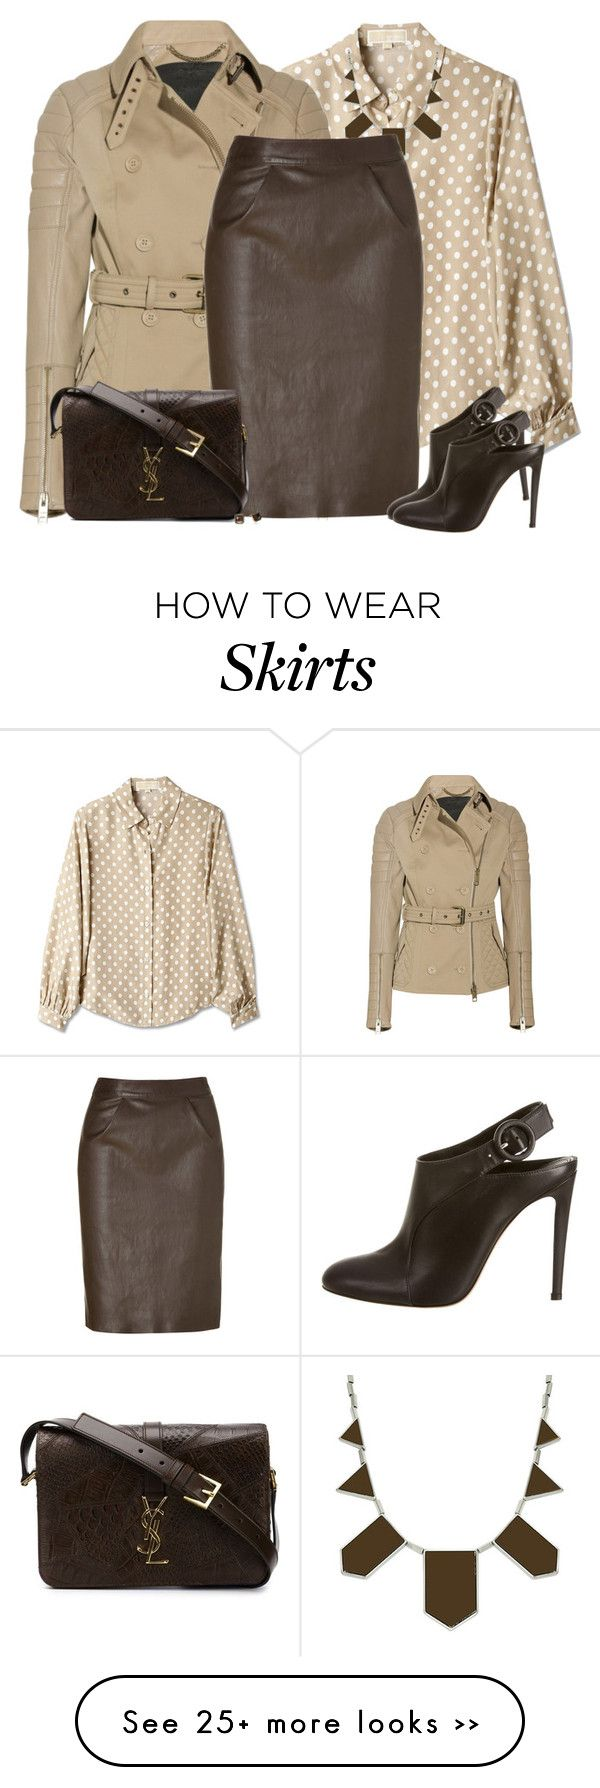 """Brown Leather Skirt"" by daiscat on Polyvore featuring MICHAEL Michael Kors, Burberry, House of Harlow 1960, Jitrois, Gianvito Rossi, Yves Saint Laurent and FOSSIL"